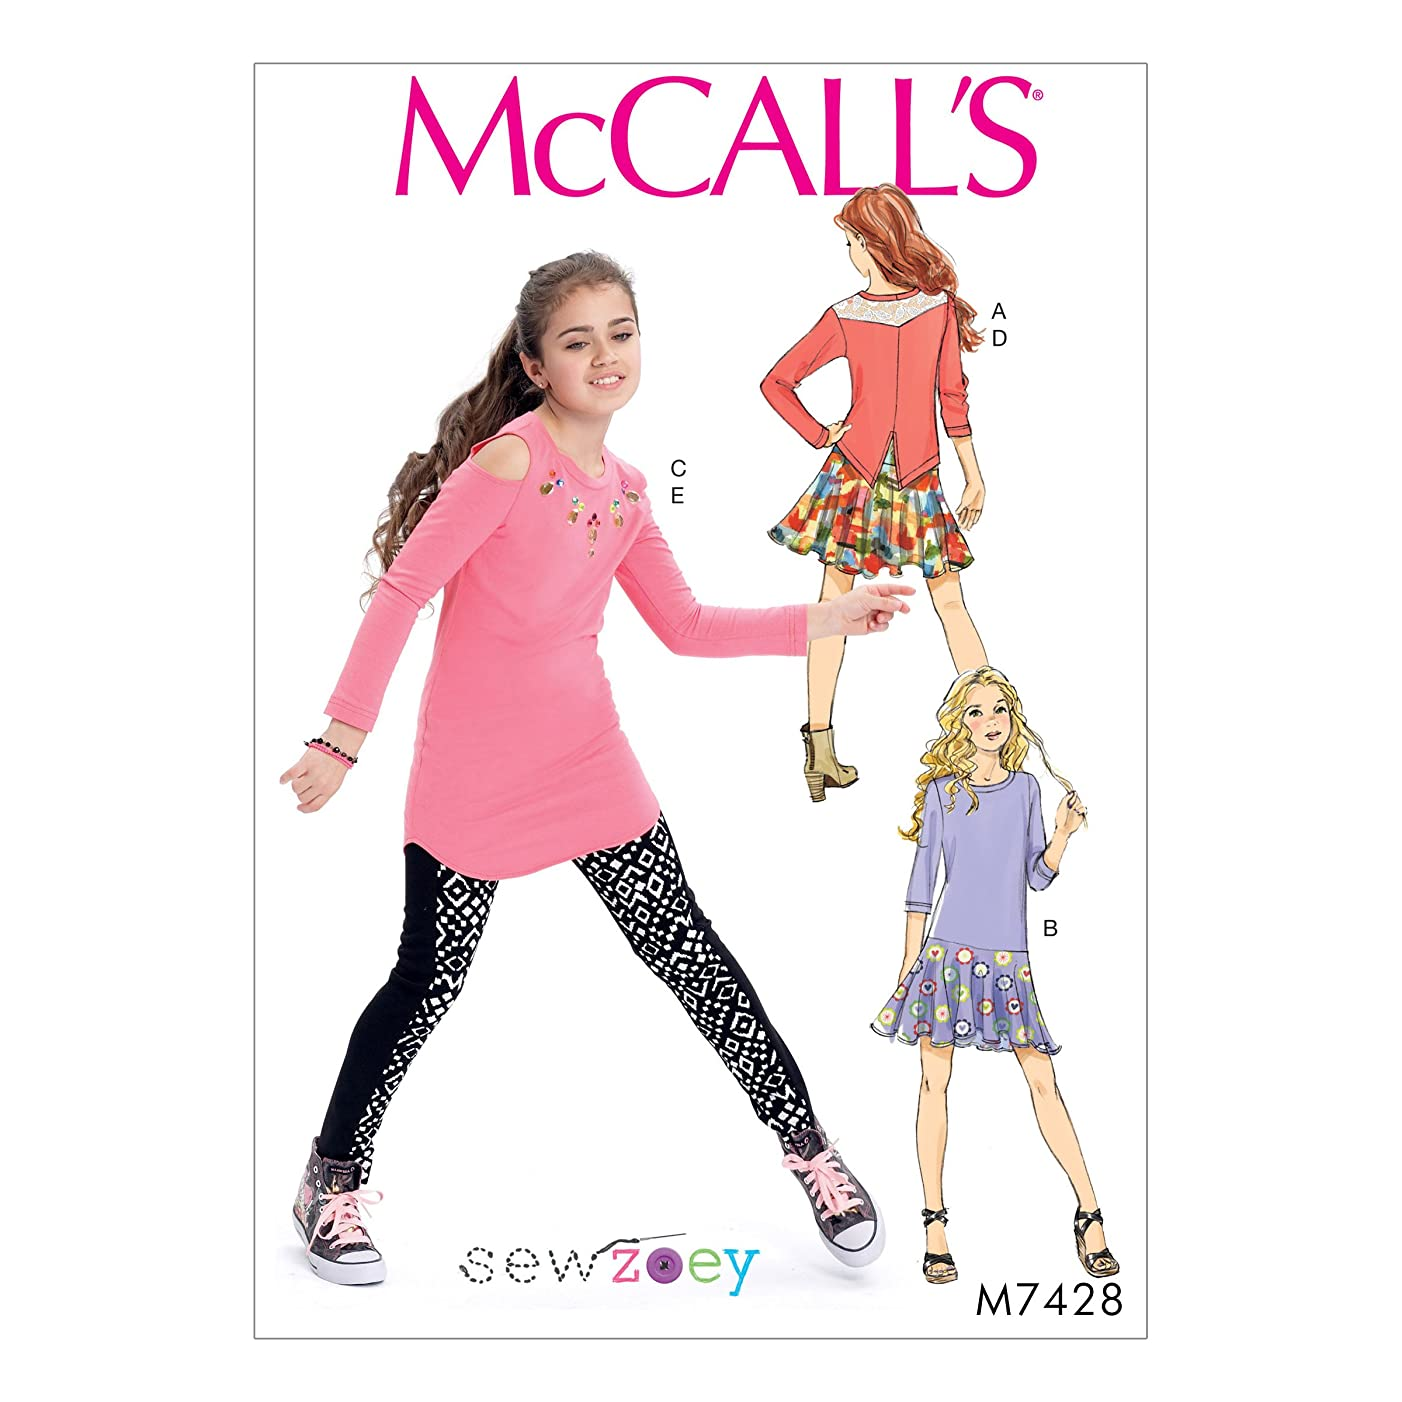 McCall Patterns M7428CHJ Girls' Back-Yoke Top, Drop-Waist, Cold-Shoulder Tunic, Skirt and Leggings Dress